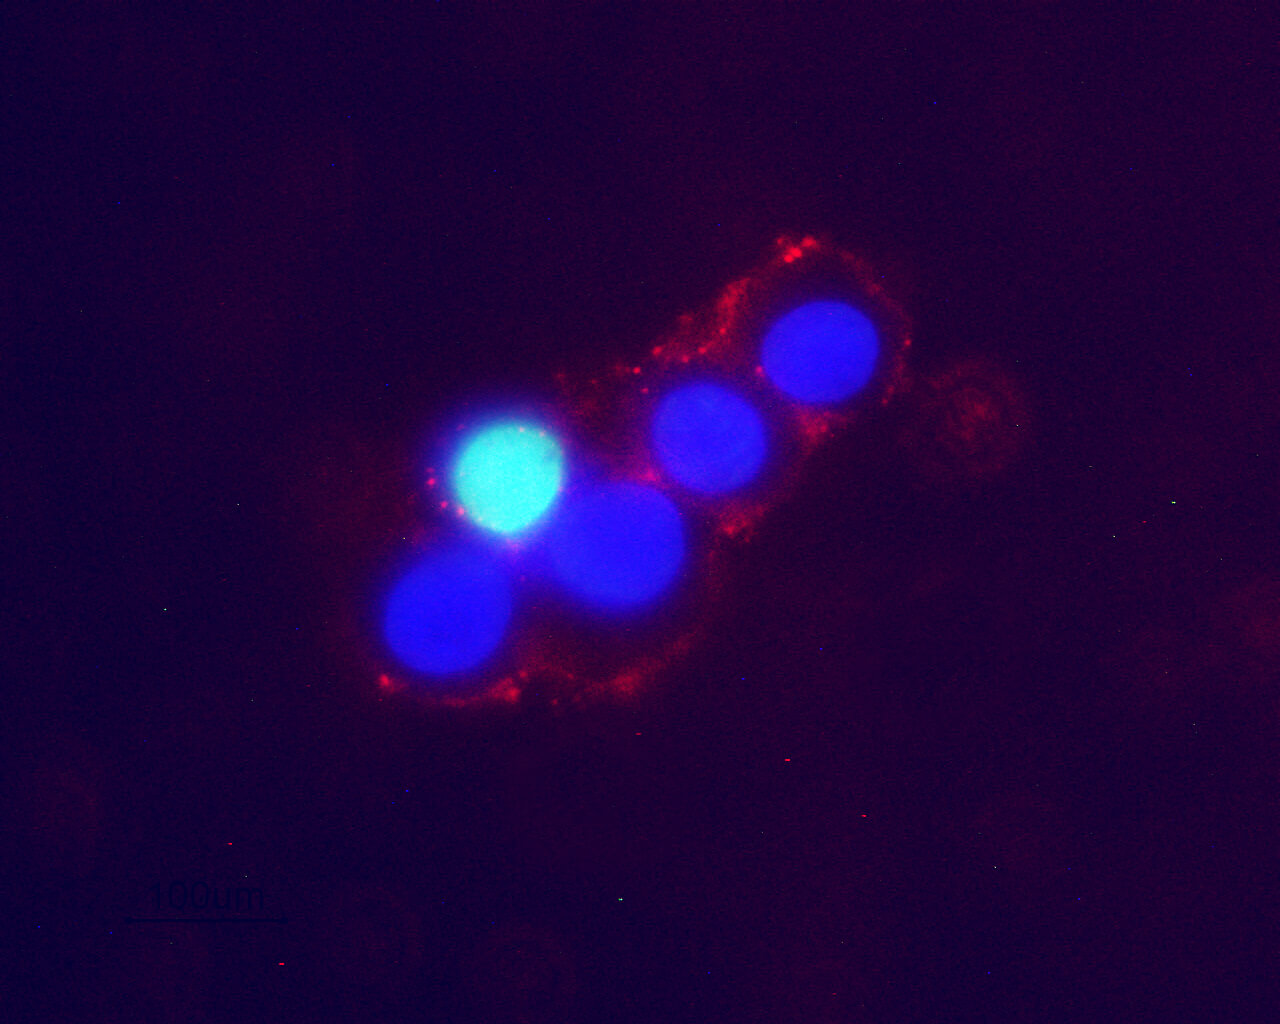 Expression of Noradrenaline transporter (NET) in live intact rat PC12 cells